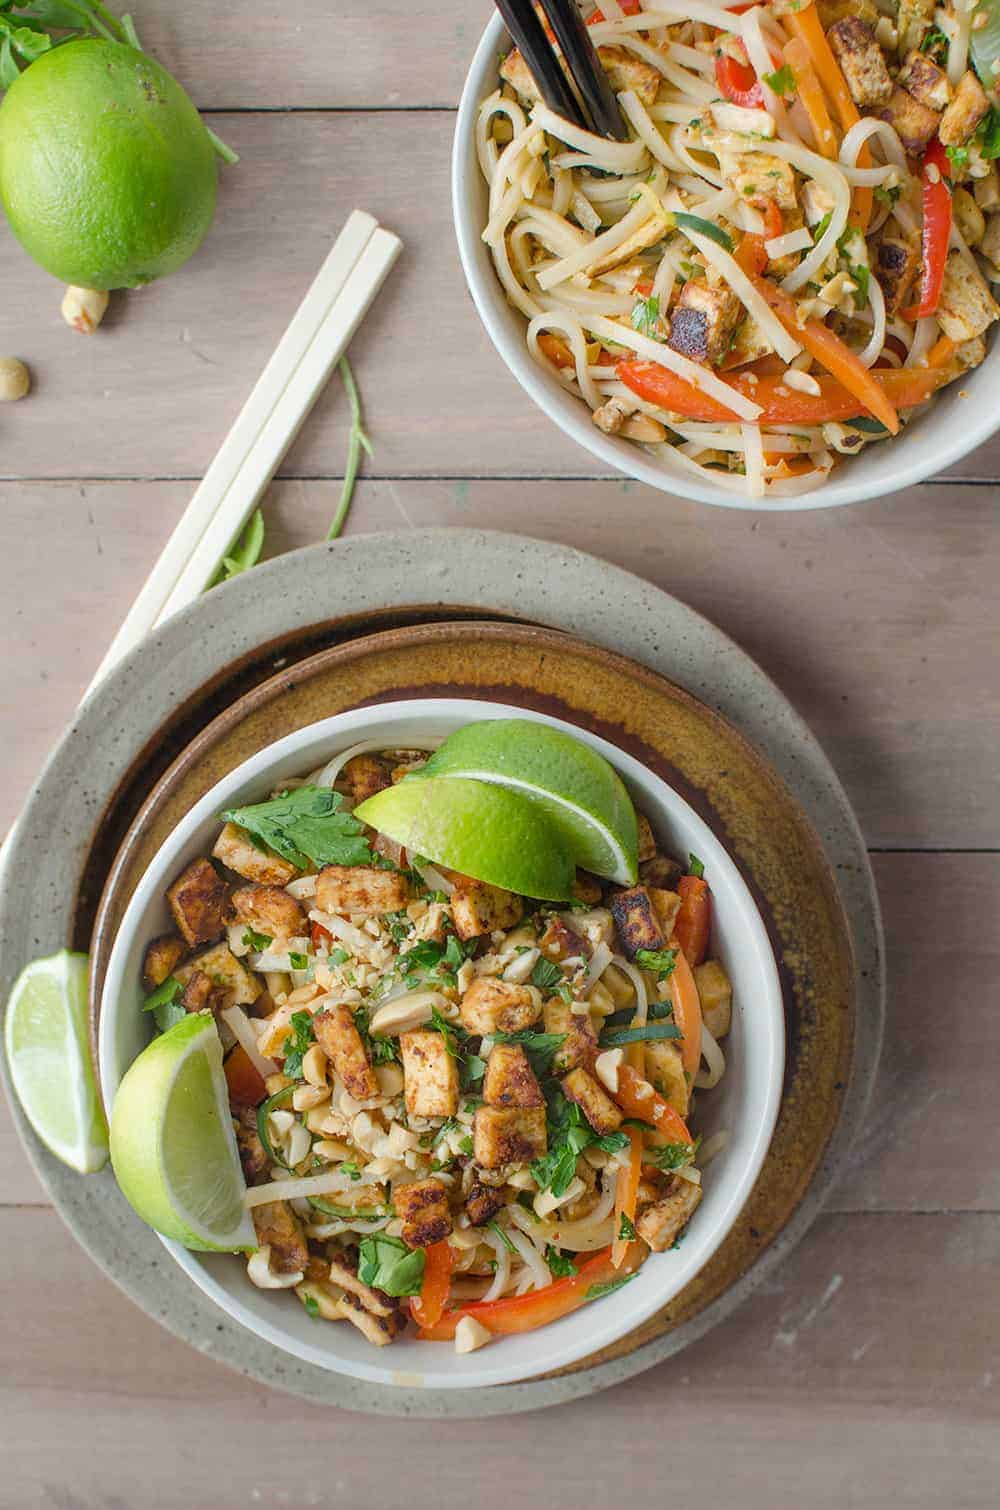 Spicy Vegan Pad ThaiDelish Knowledge